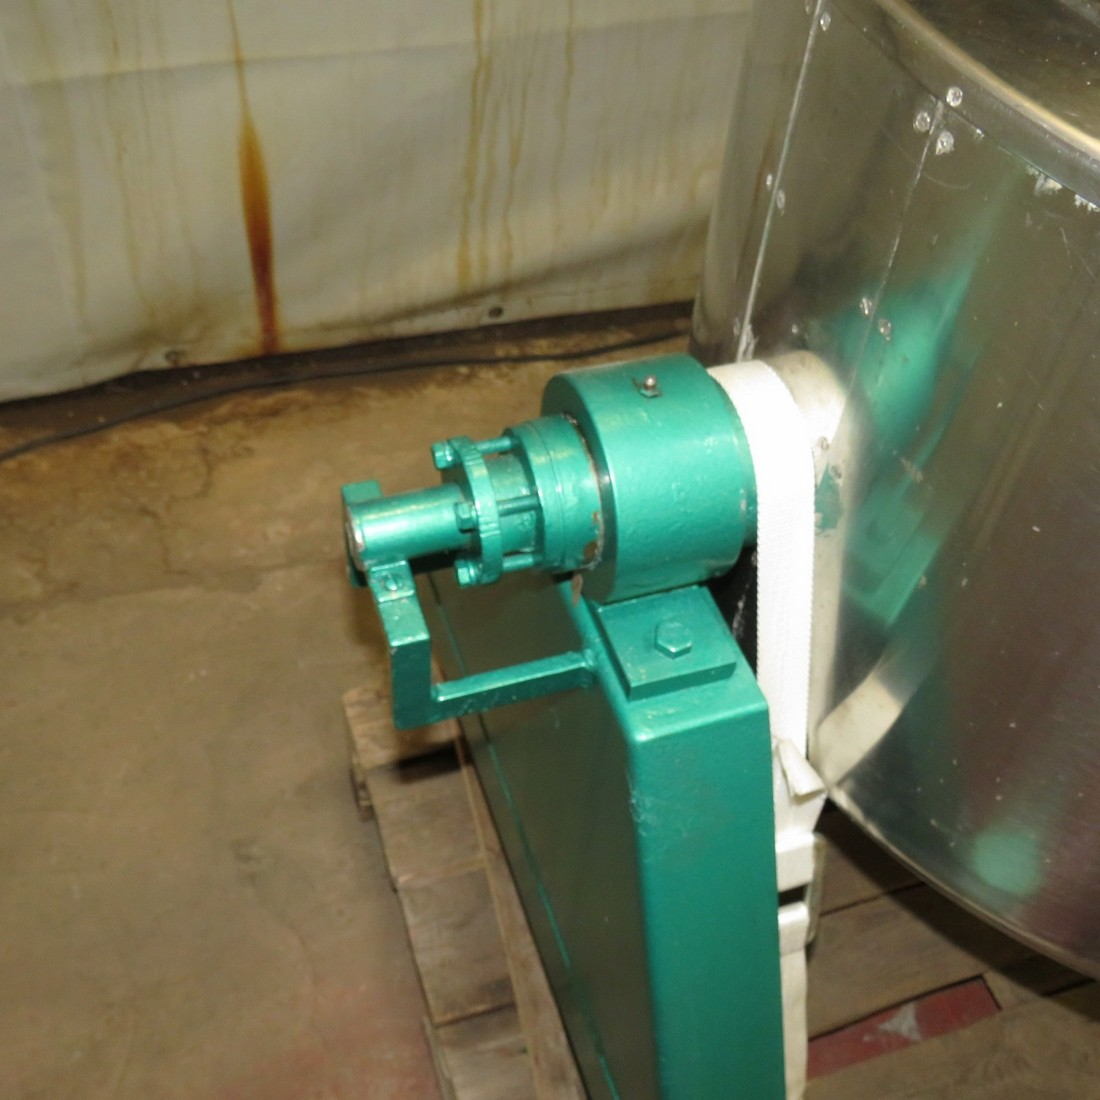 R11DB22647  Stainless steel BIONAZ melter 150 litres double jacket